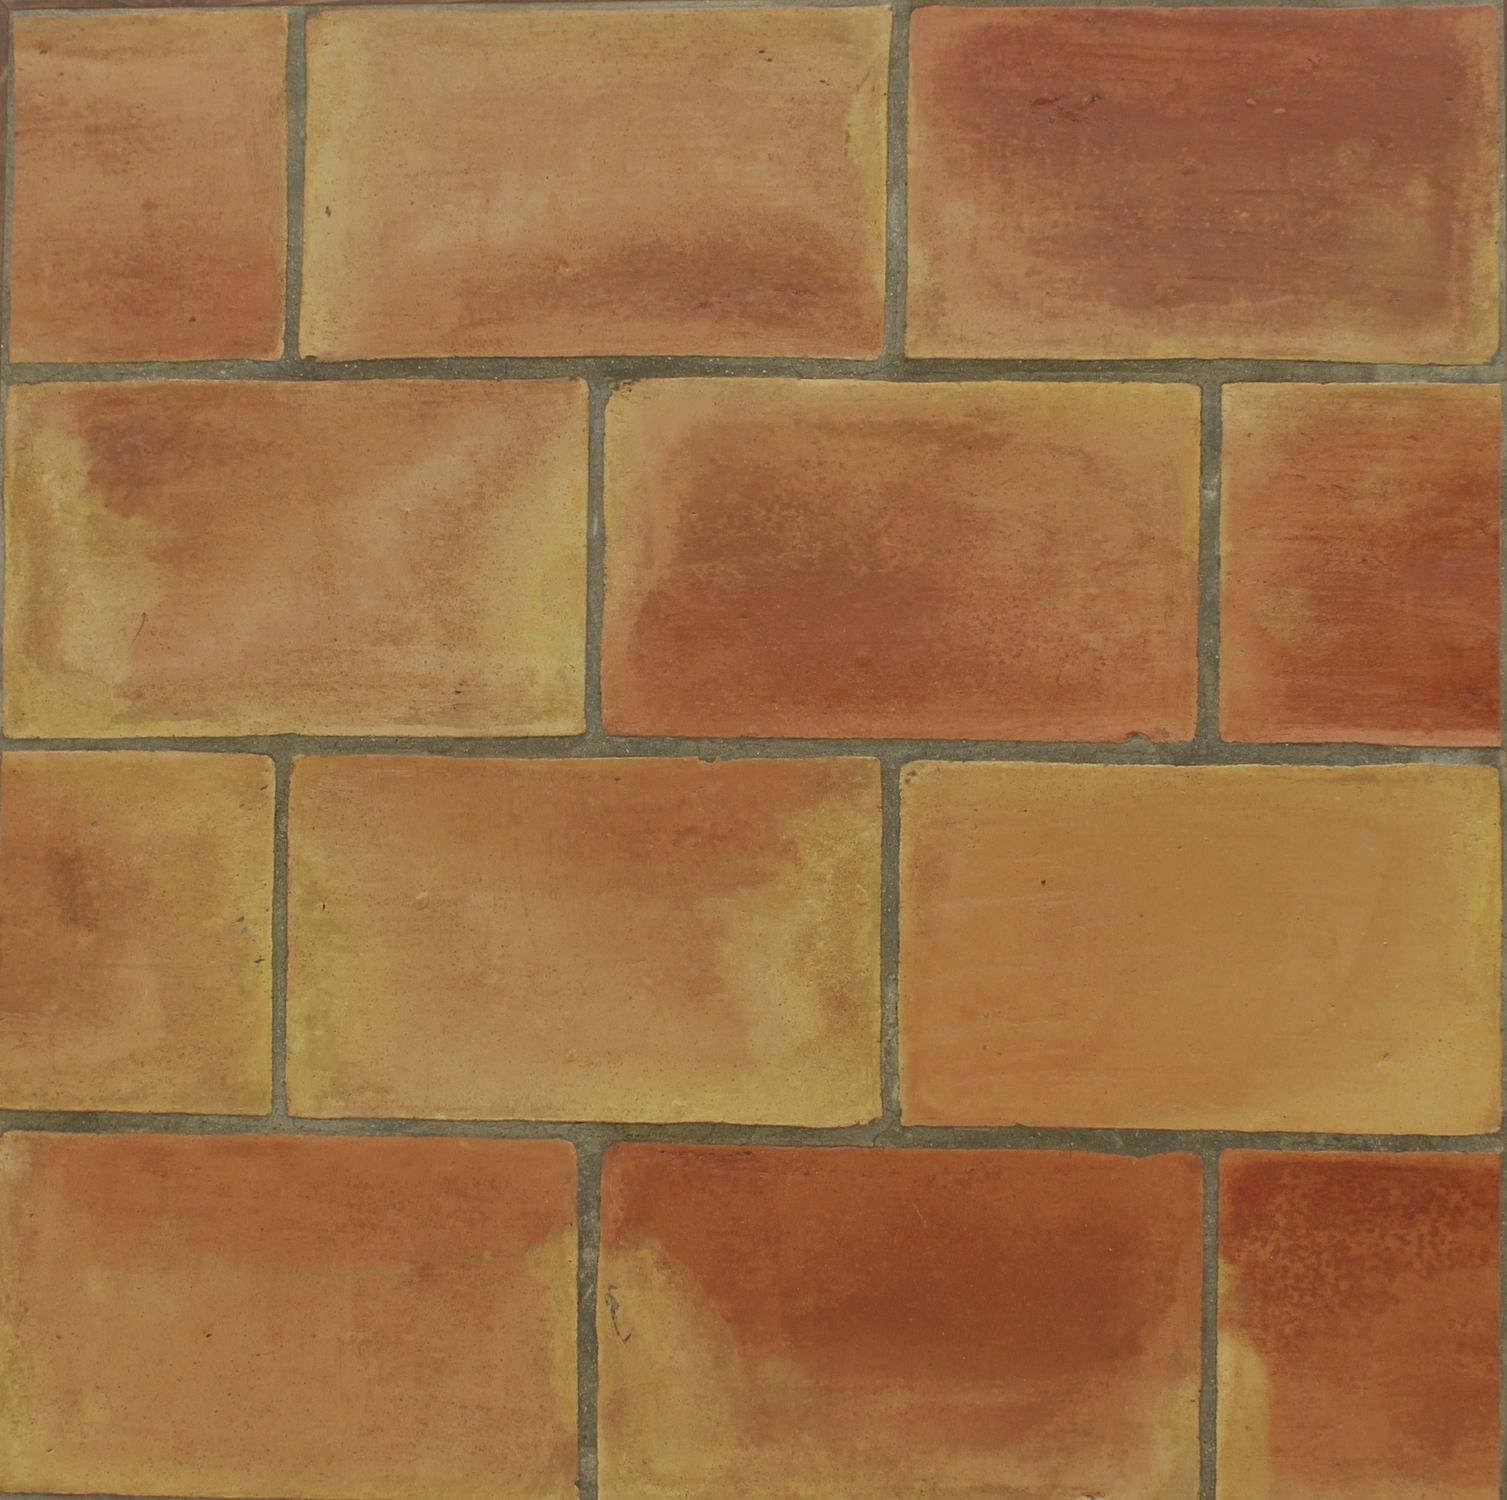 terracotta wall tiles prices in pakistan. Black Bedroom Furniture Sets. Home Design Ideas